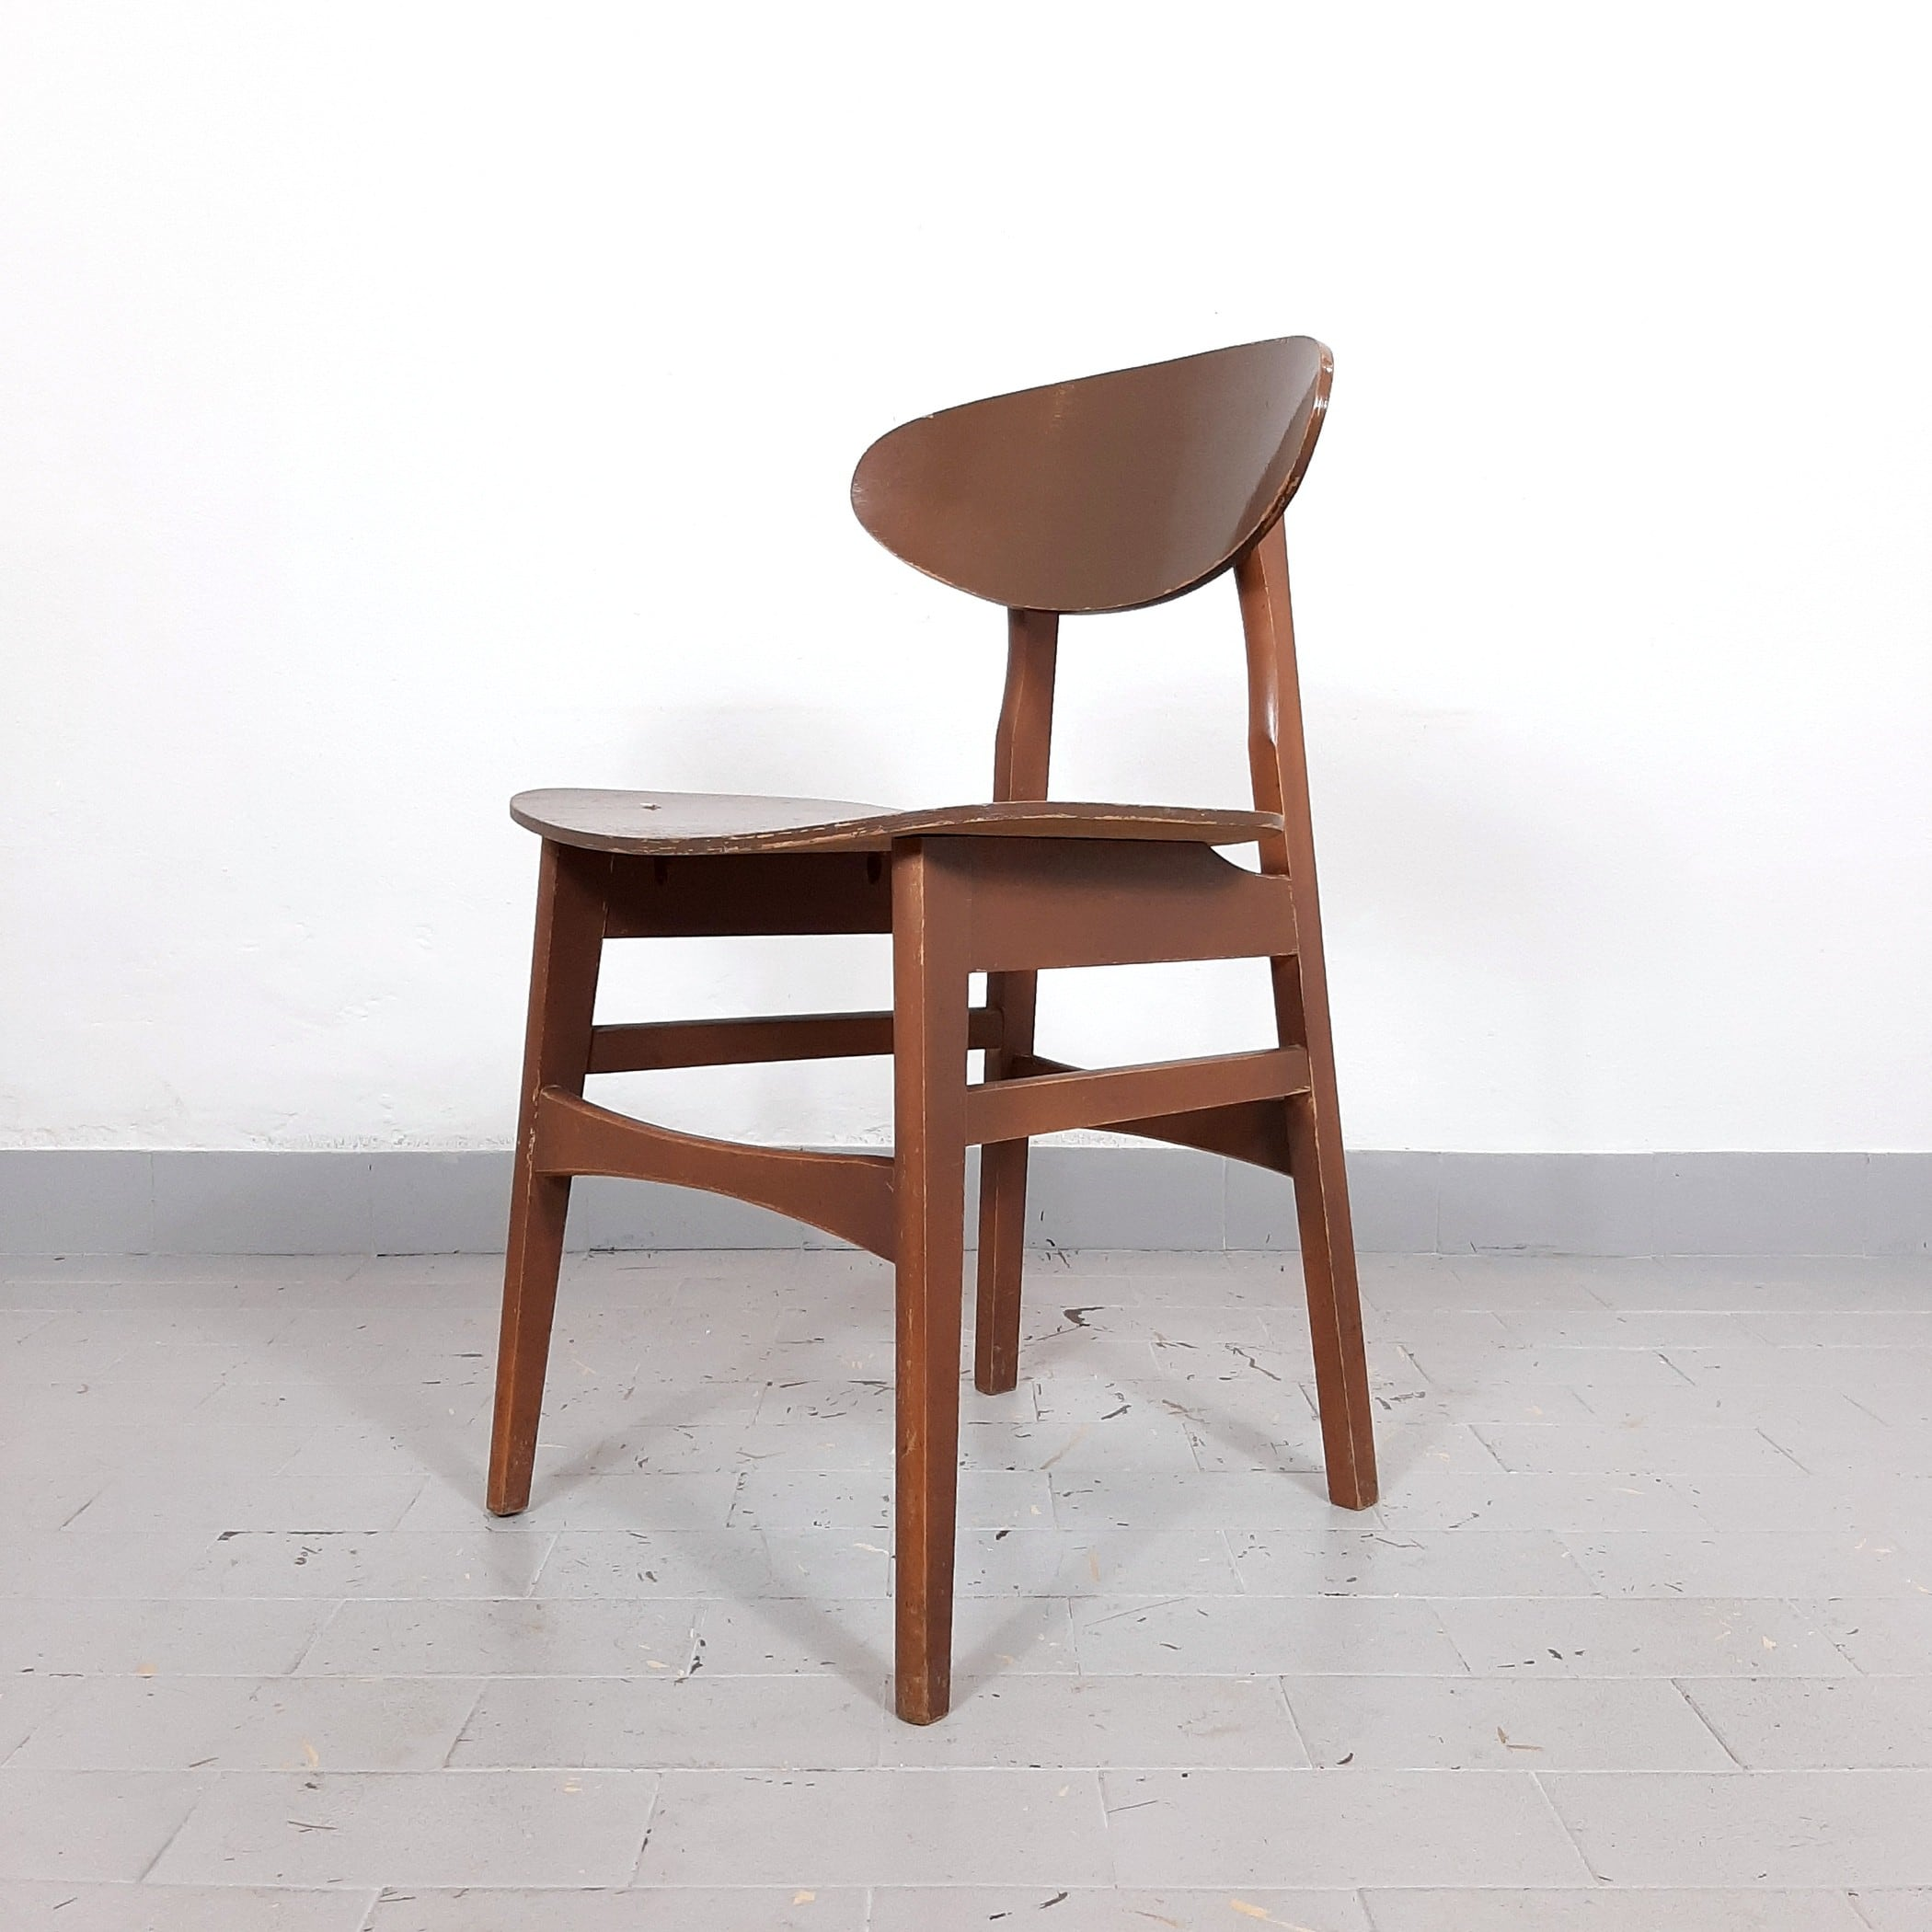 1 of 20 Retro dining chair from '60s Yugoslavia Wood office chair Home office Mid-century wood chair